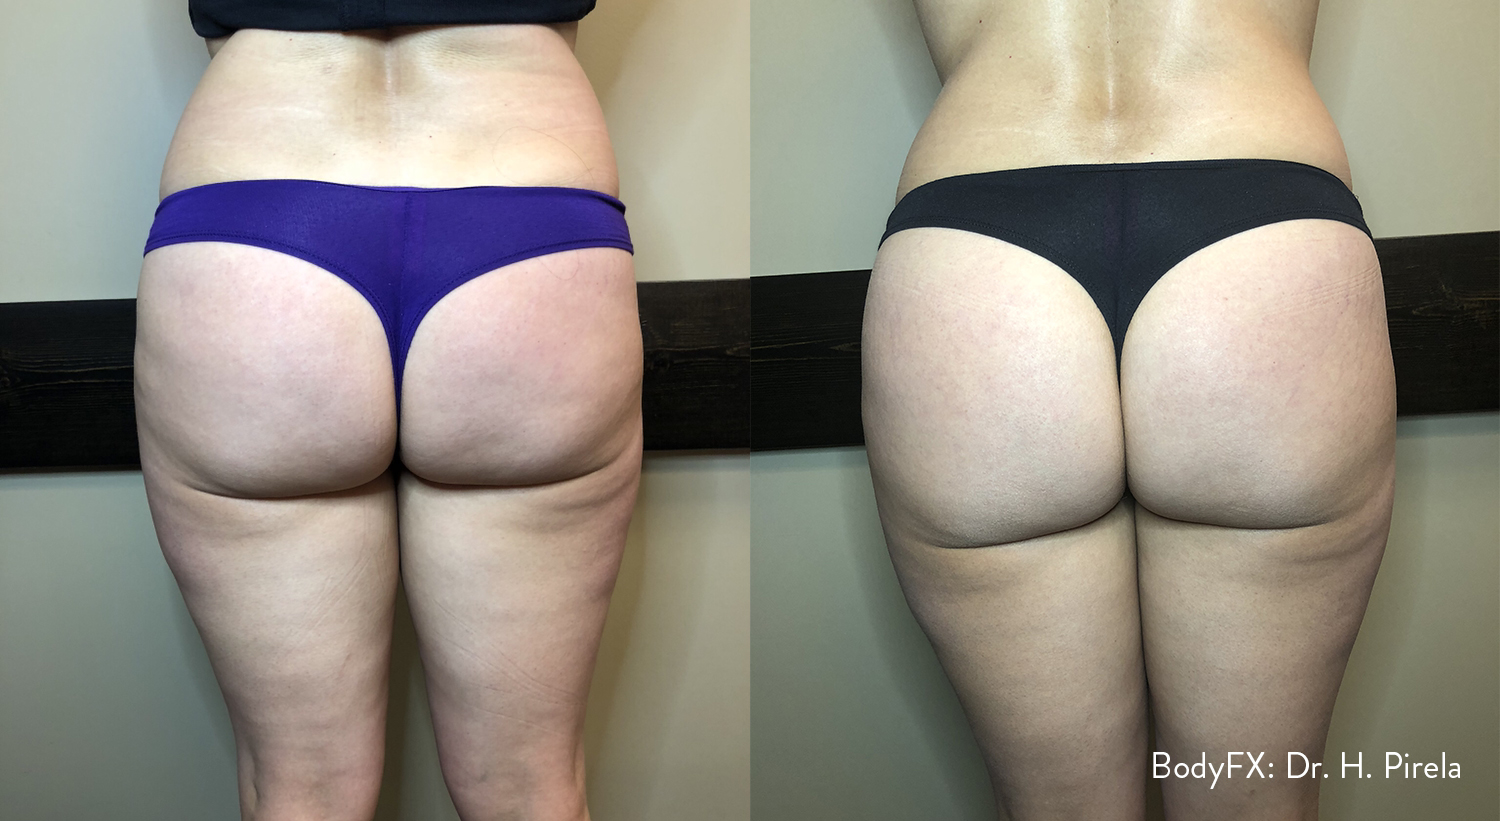 Before and after BodyFX